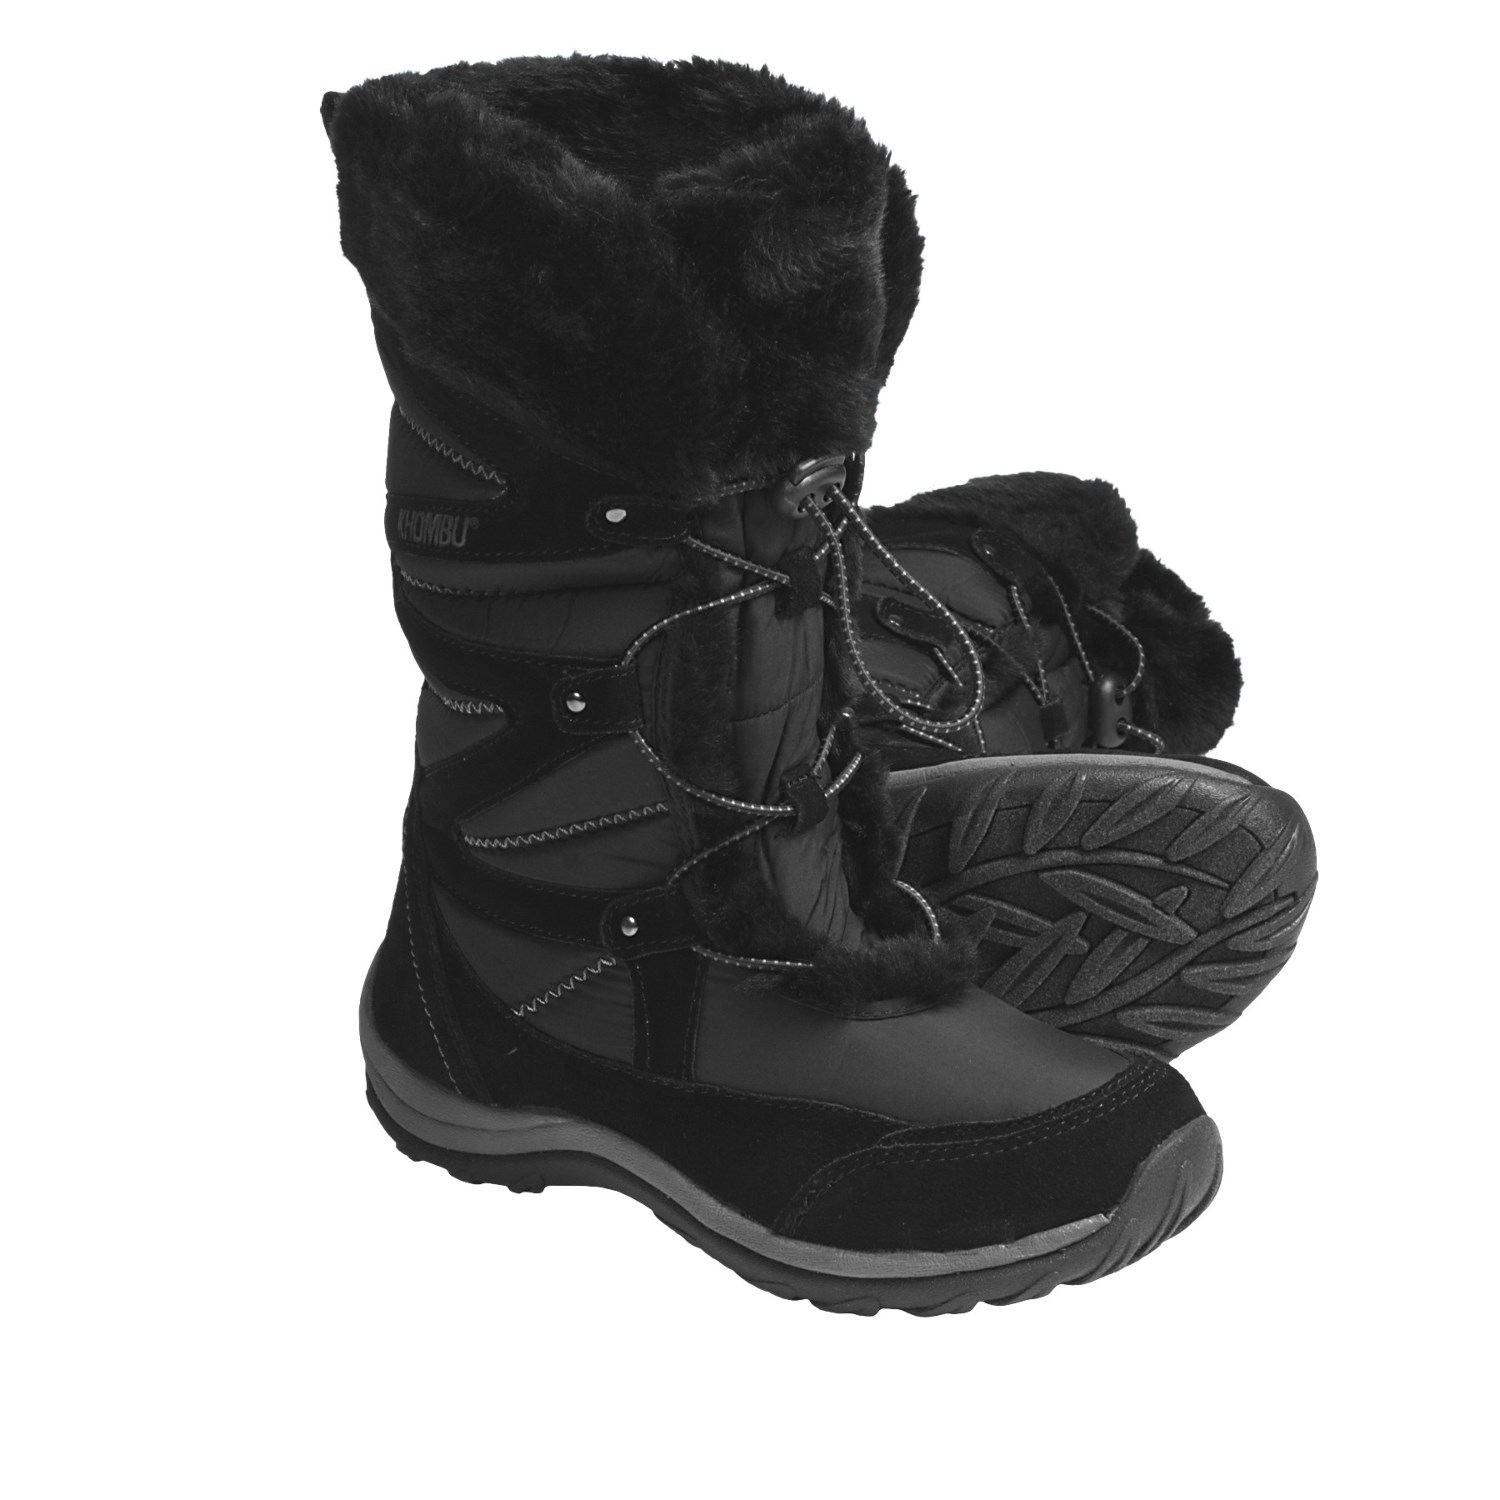 Luxury WomenWinterCasualFringedFurWarmShoesMidCalfFlatOutdoorSnow